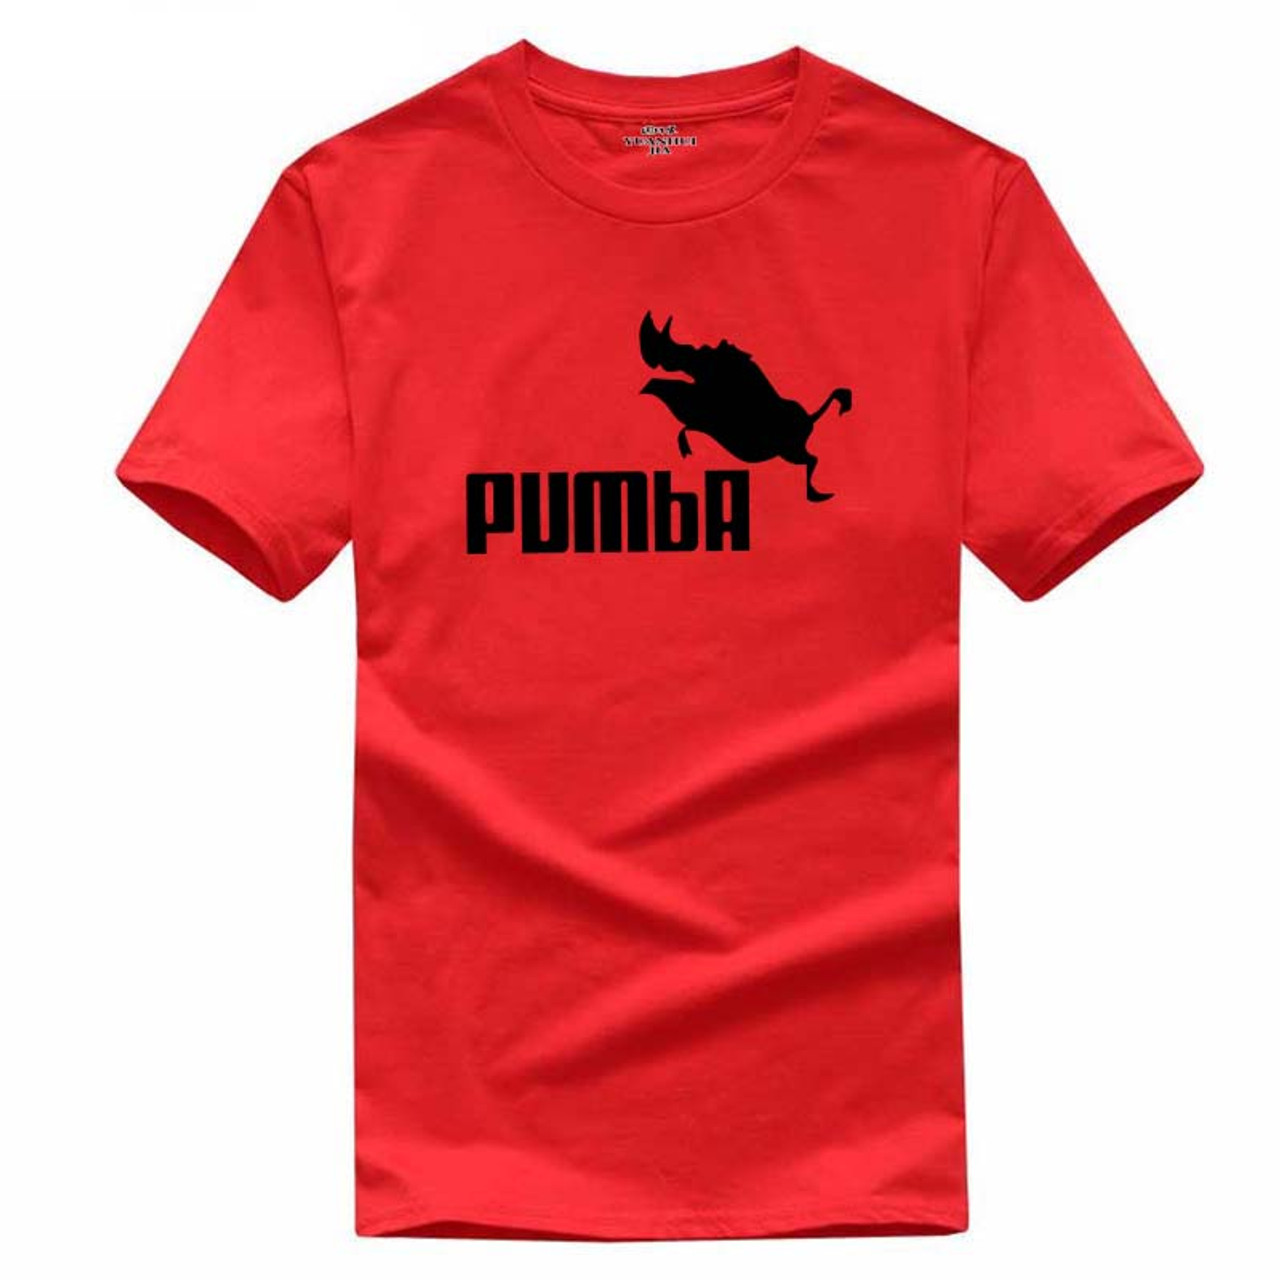 cb6022f7e ... 2018 funny tee cute t shirts homme Pumba men short sleeves cotton tops  cool tshirt lovely ...